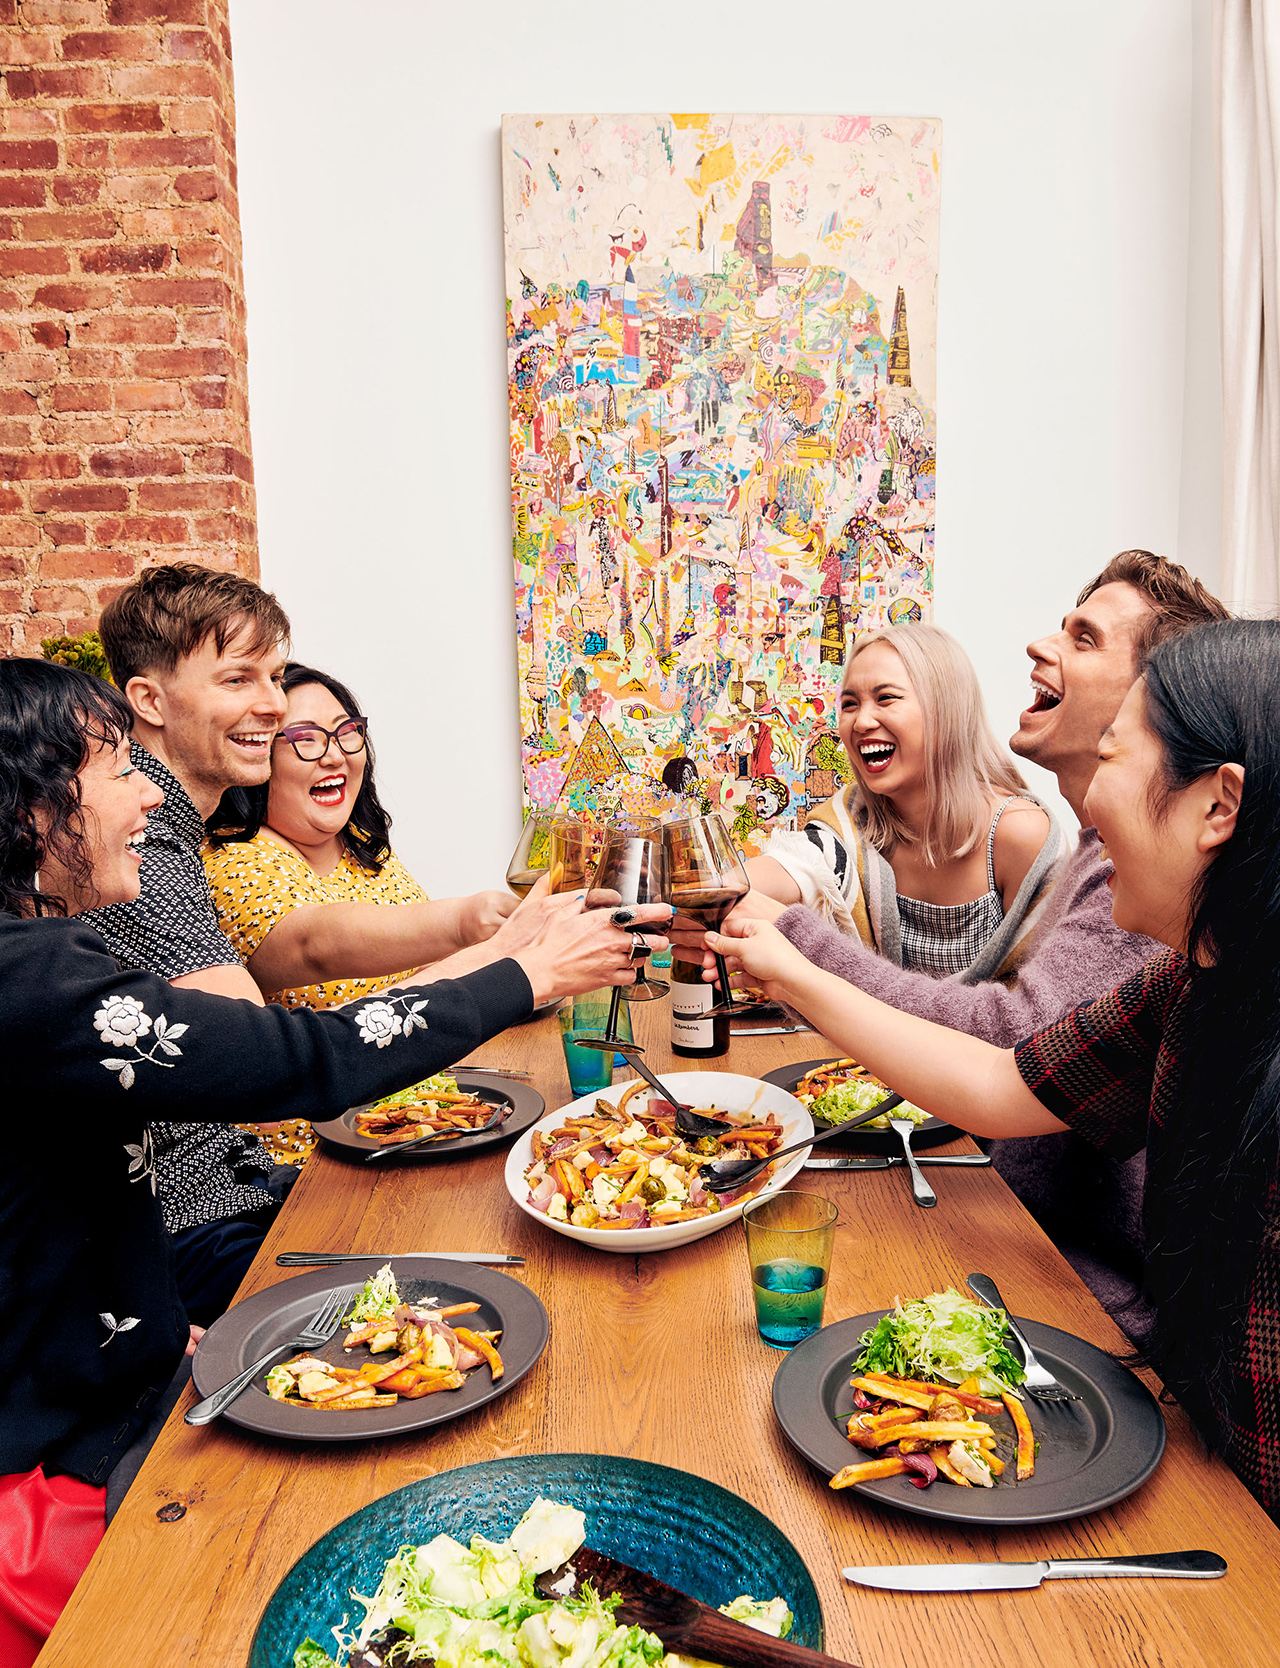 antoni and friends toasting over dinner